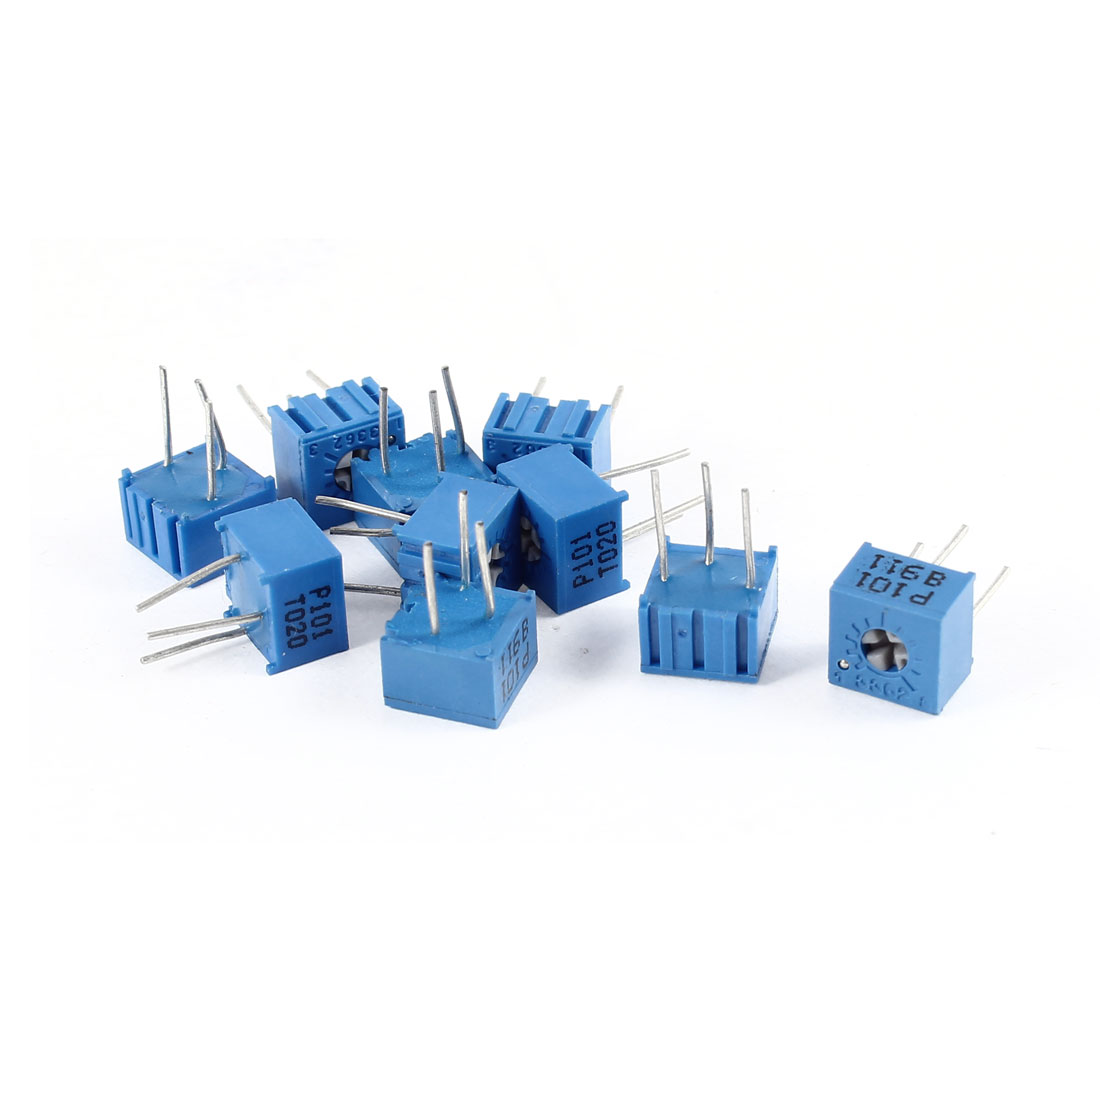 10Pcs 3362 High Precision Variable Resistors Trimmer Potentiometer 100Ohm 0.5W